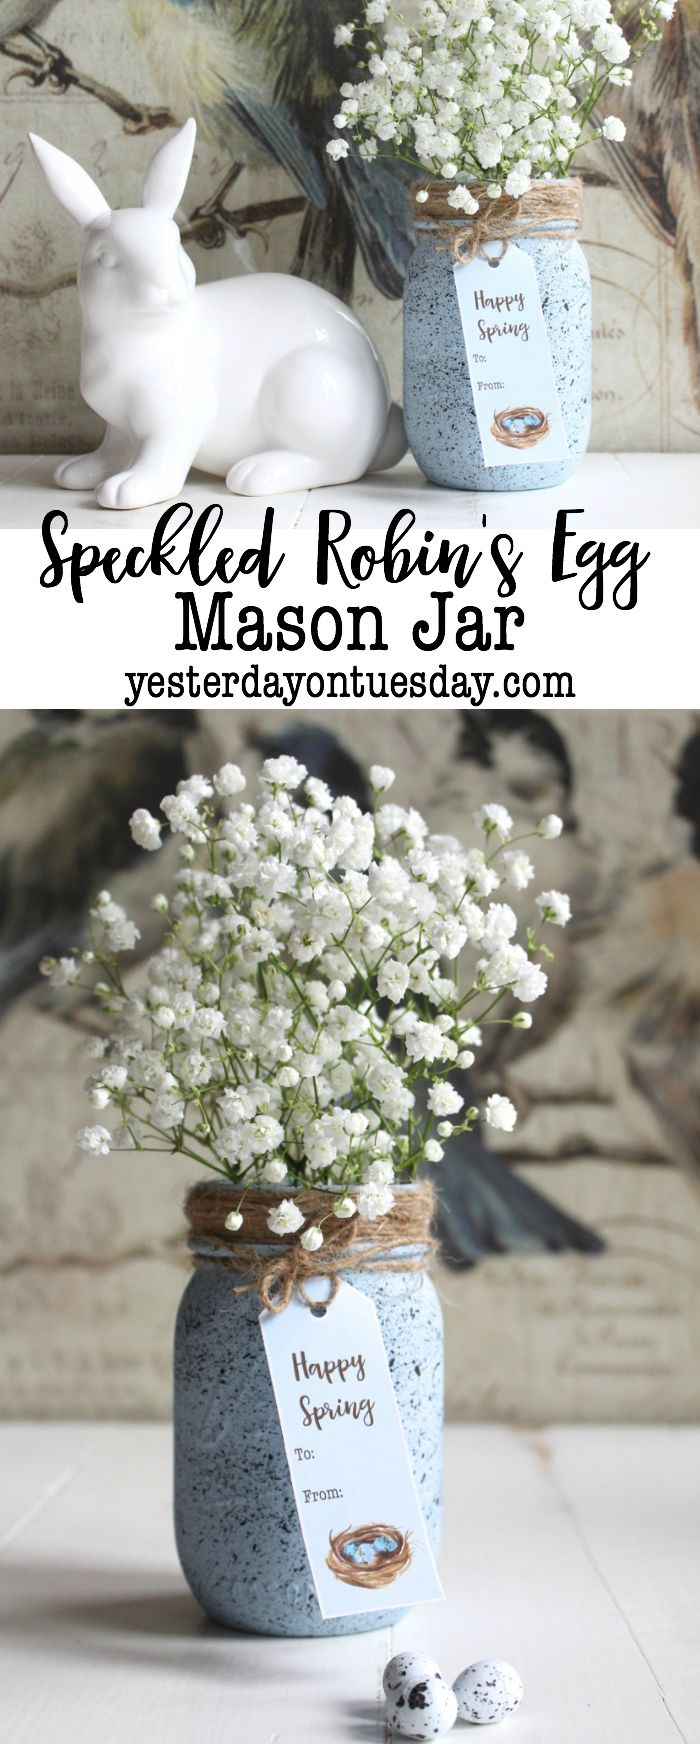 Speckled Robin's Egg Mason Jar and Printable Tags: How to create a faux robin's egg finish on a mason jar. Lovely decor for spring and Easter. mason jar | easter | spring | robin's egg | vase | decor | printables | gift